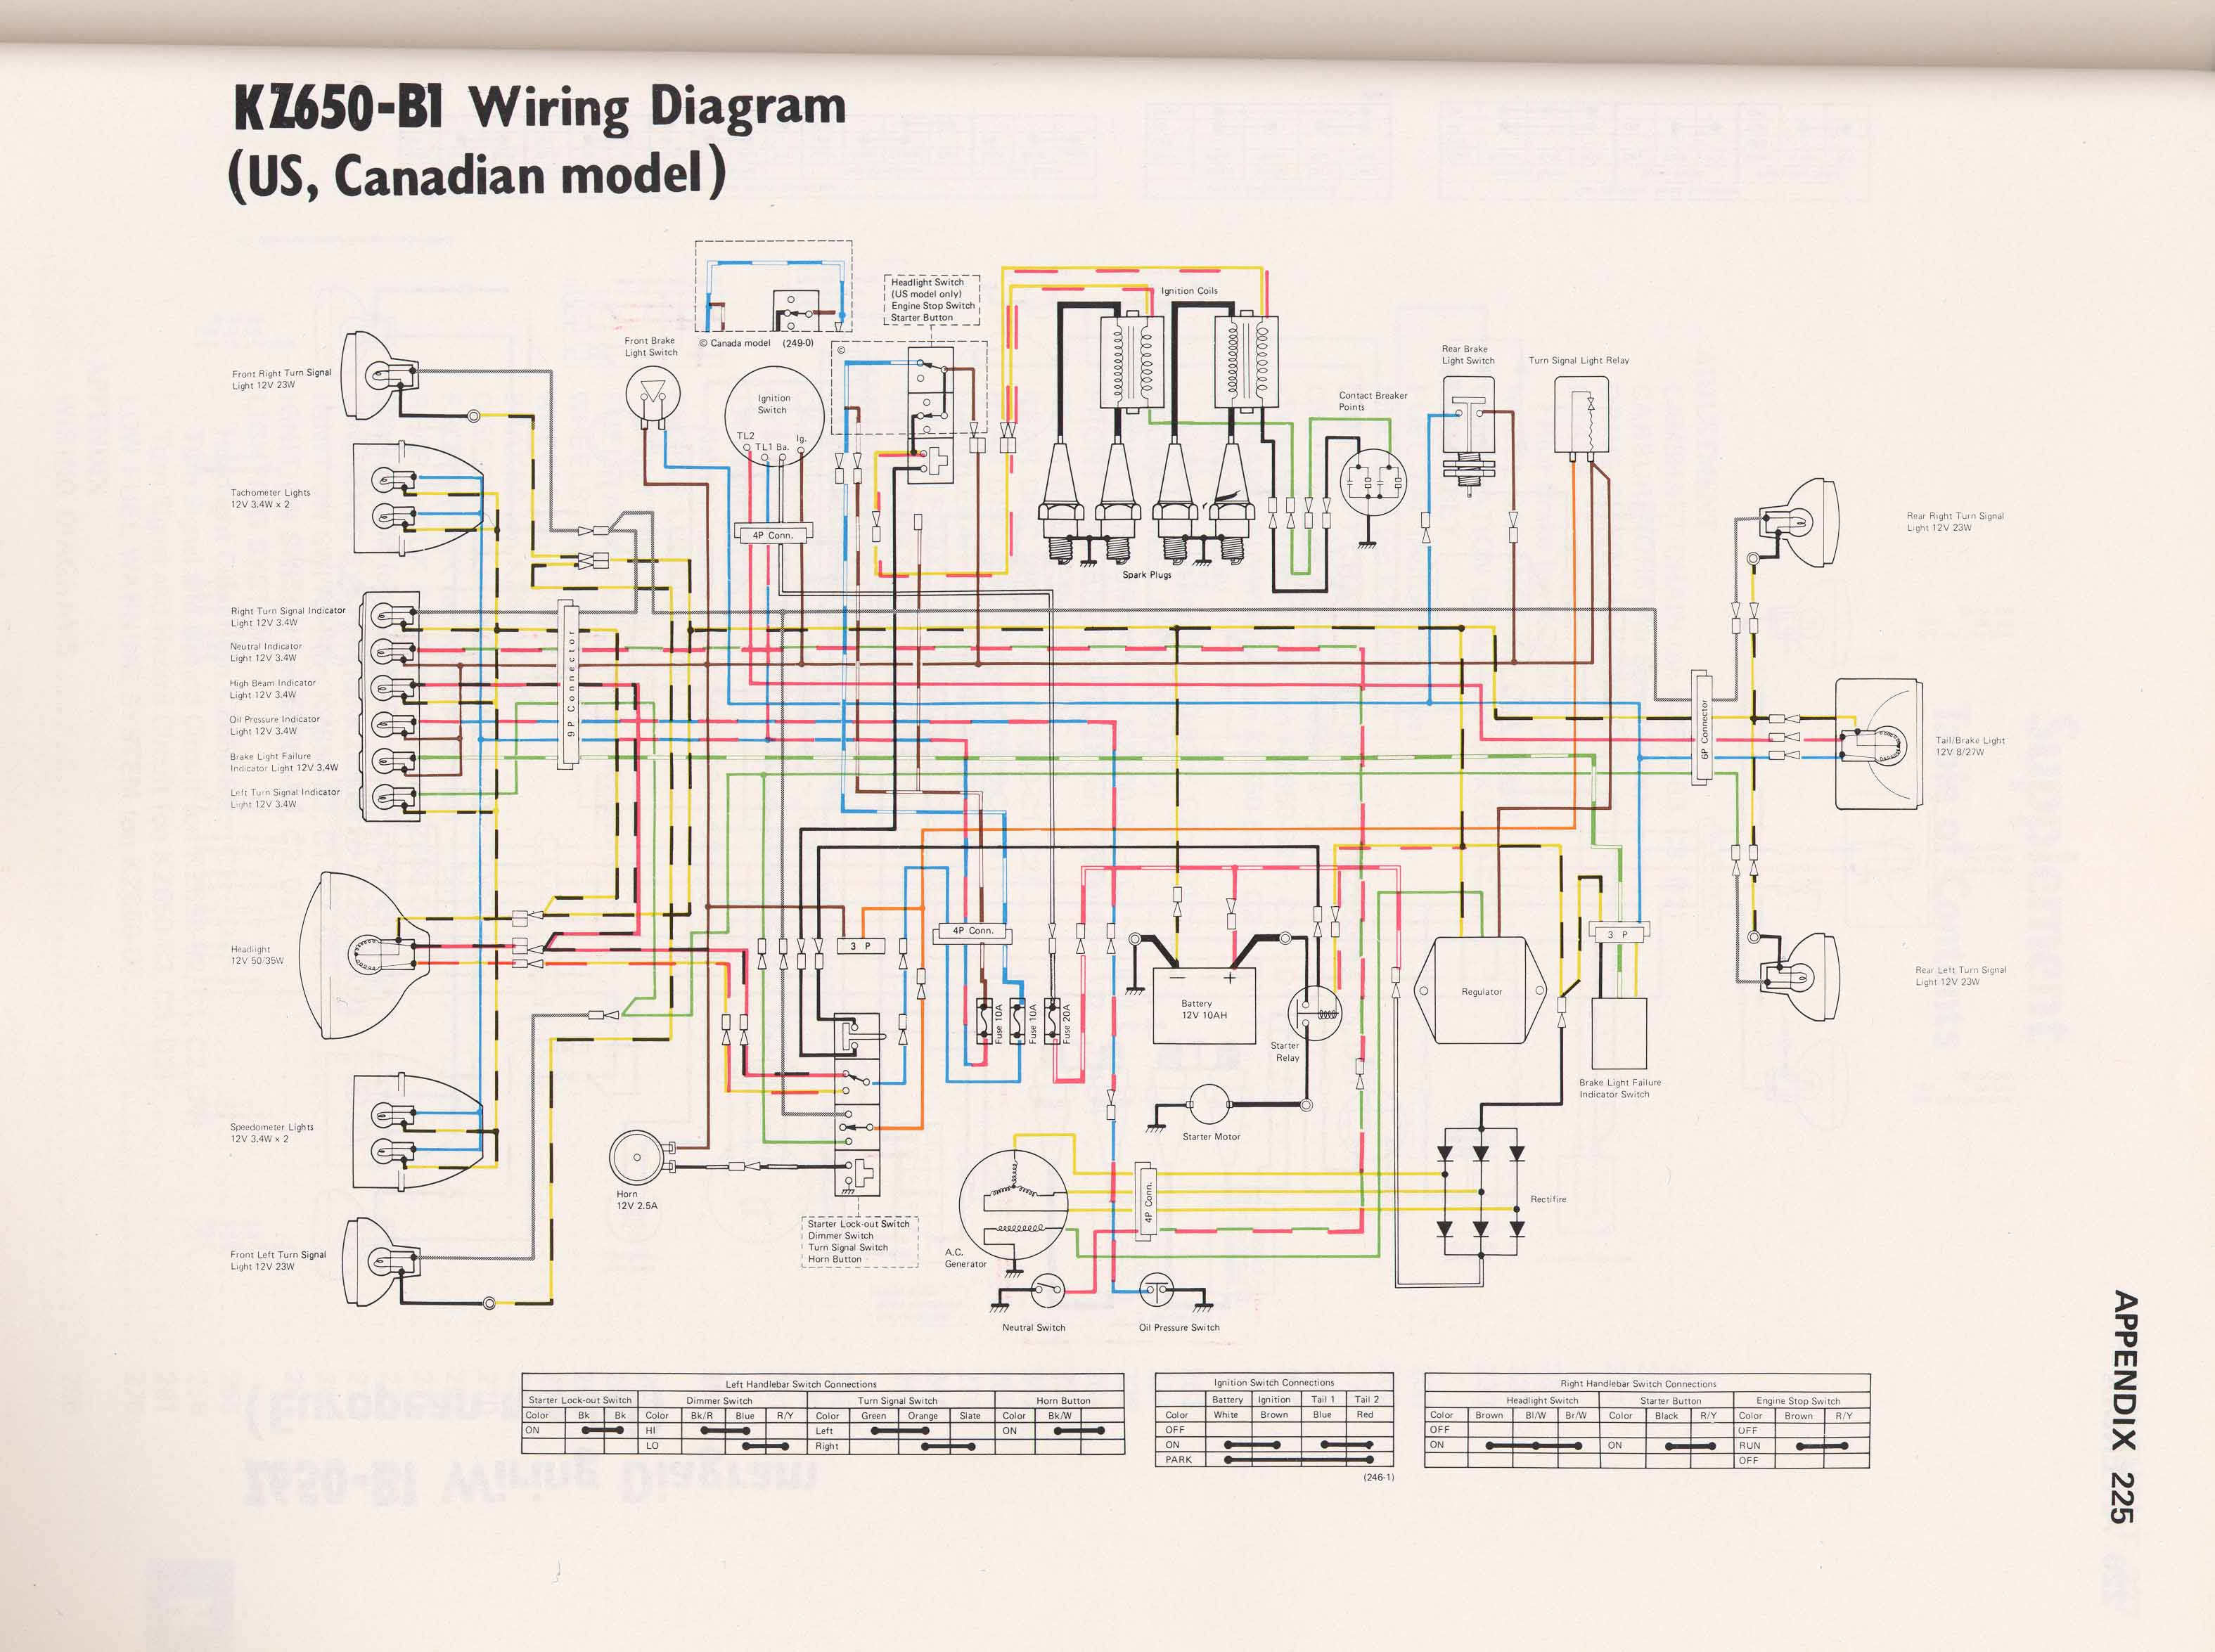 KZ650 B1 100 [ car ignition wiring diagram ] affordable nice 1968 RV 12V Wiring Diagram at gsmx.co